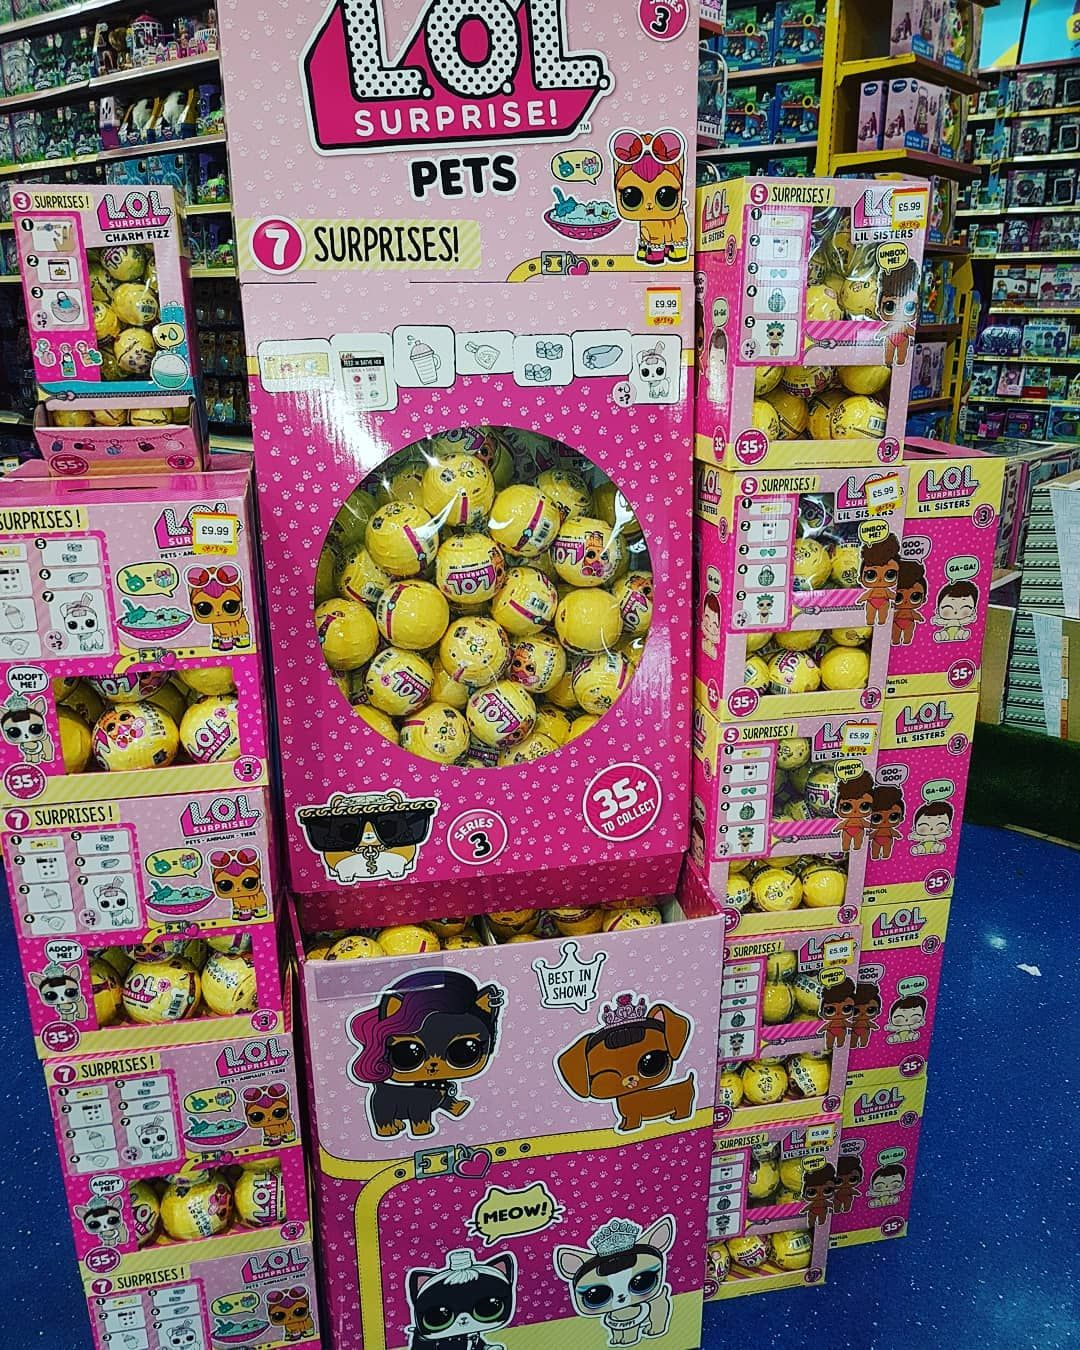 Oh My Im In L O L Heaven Lol Pets And Lol Lil Sisters Series 3 In My Local Smythstoys Hehe Appologies For The Delay In Upl Lol Dolls Bunny Mom Birthday Toys